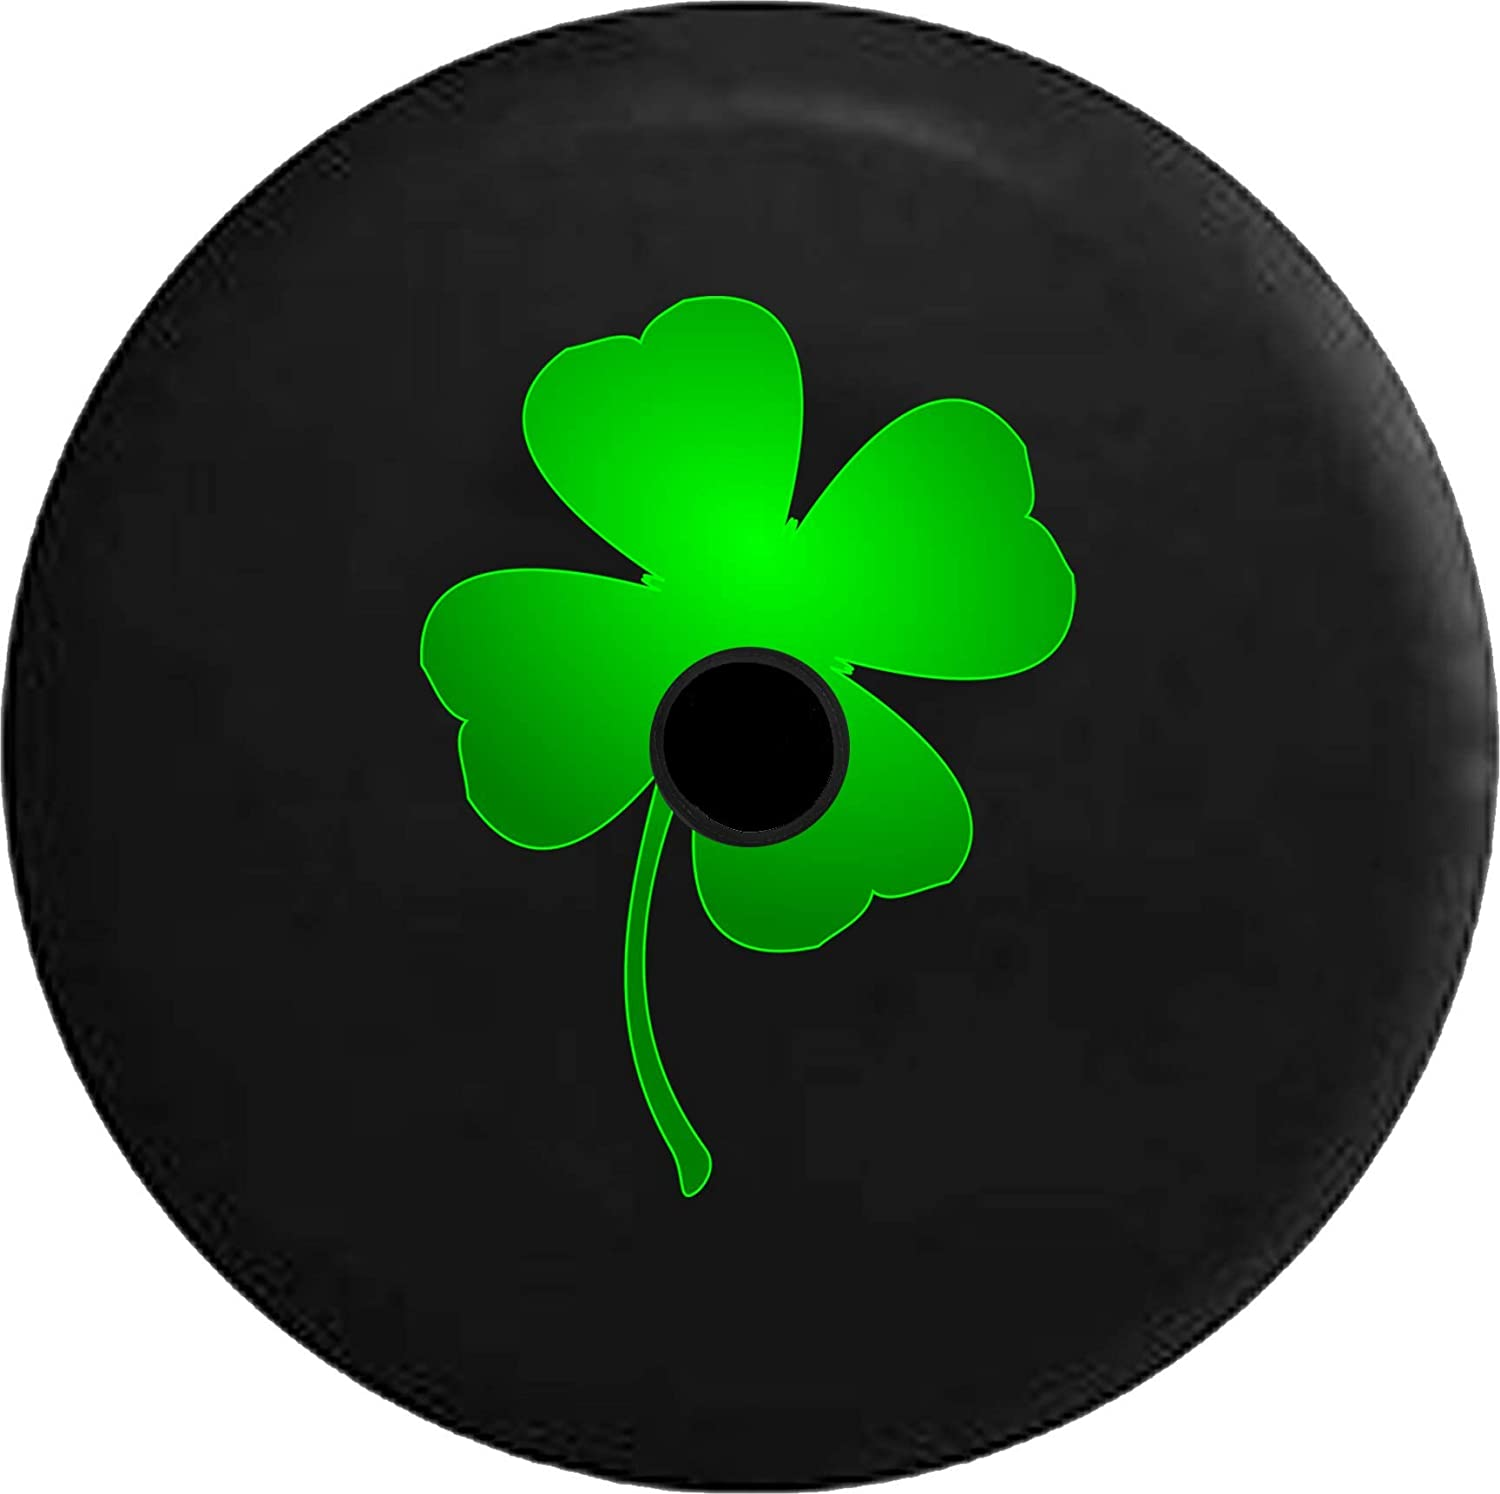 Pike Outdoors Jl Series Spare Tire Cover Backup Camera Hole Green Lucky 4 Leaf Clover Shamrock Irish Heritage Black 33 In Automotive